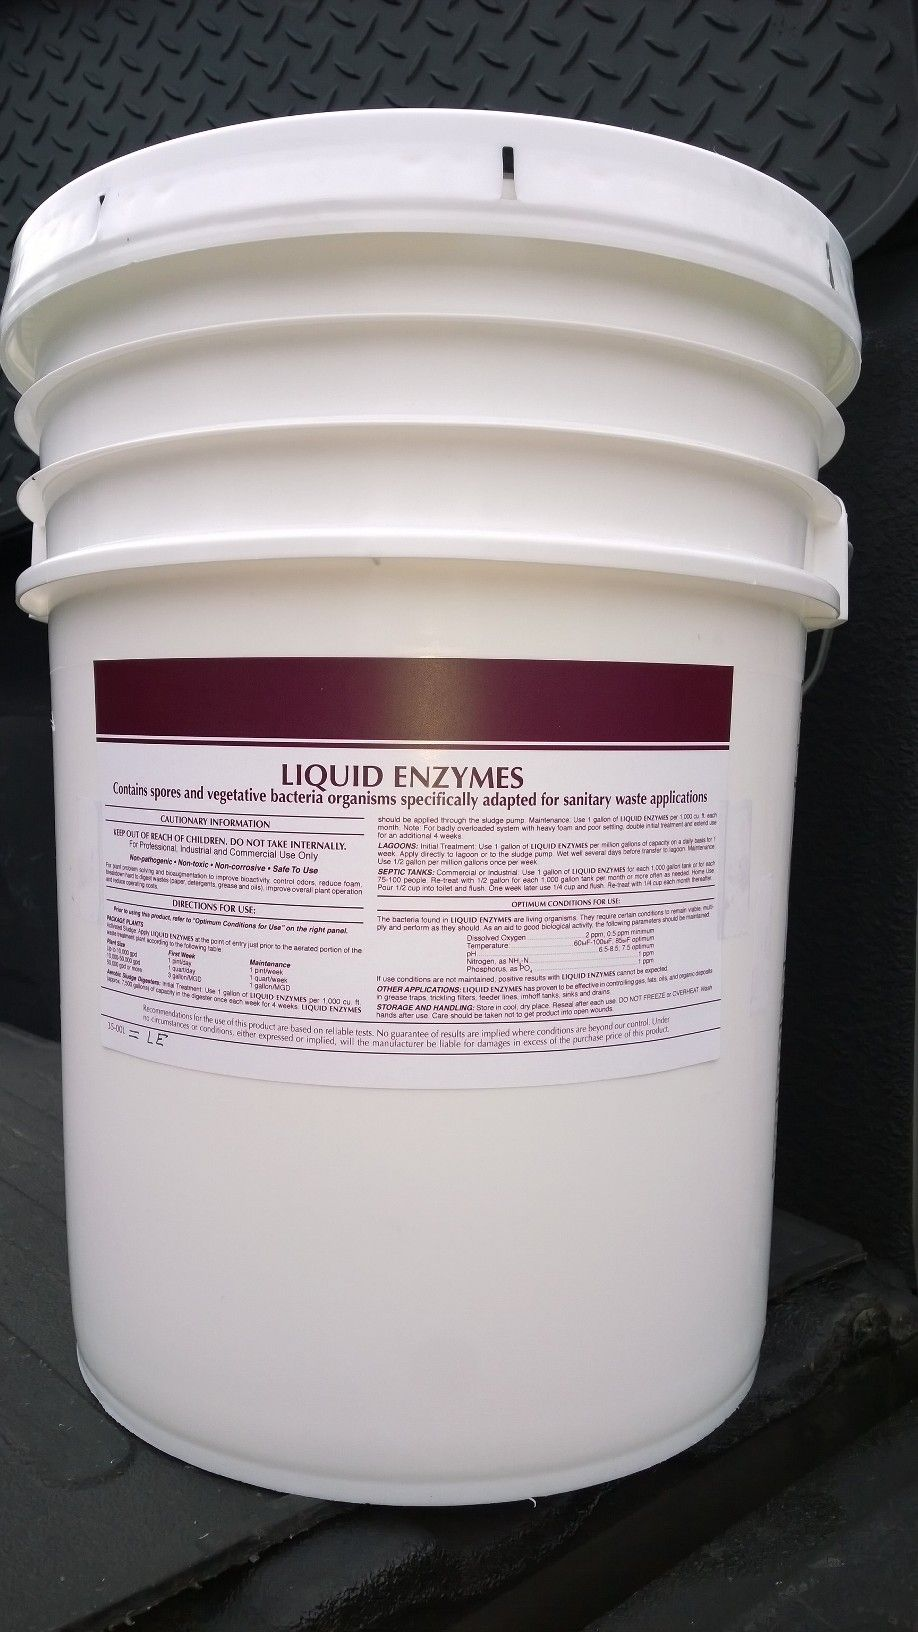 5 Gal Pail Natural Drain Line Grease Trap Septic Tank Liquid Enzymes Cleaner Non Toxic Non Corrosive Biodegradable Products Nontoxic Cleaners Septic System